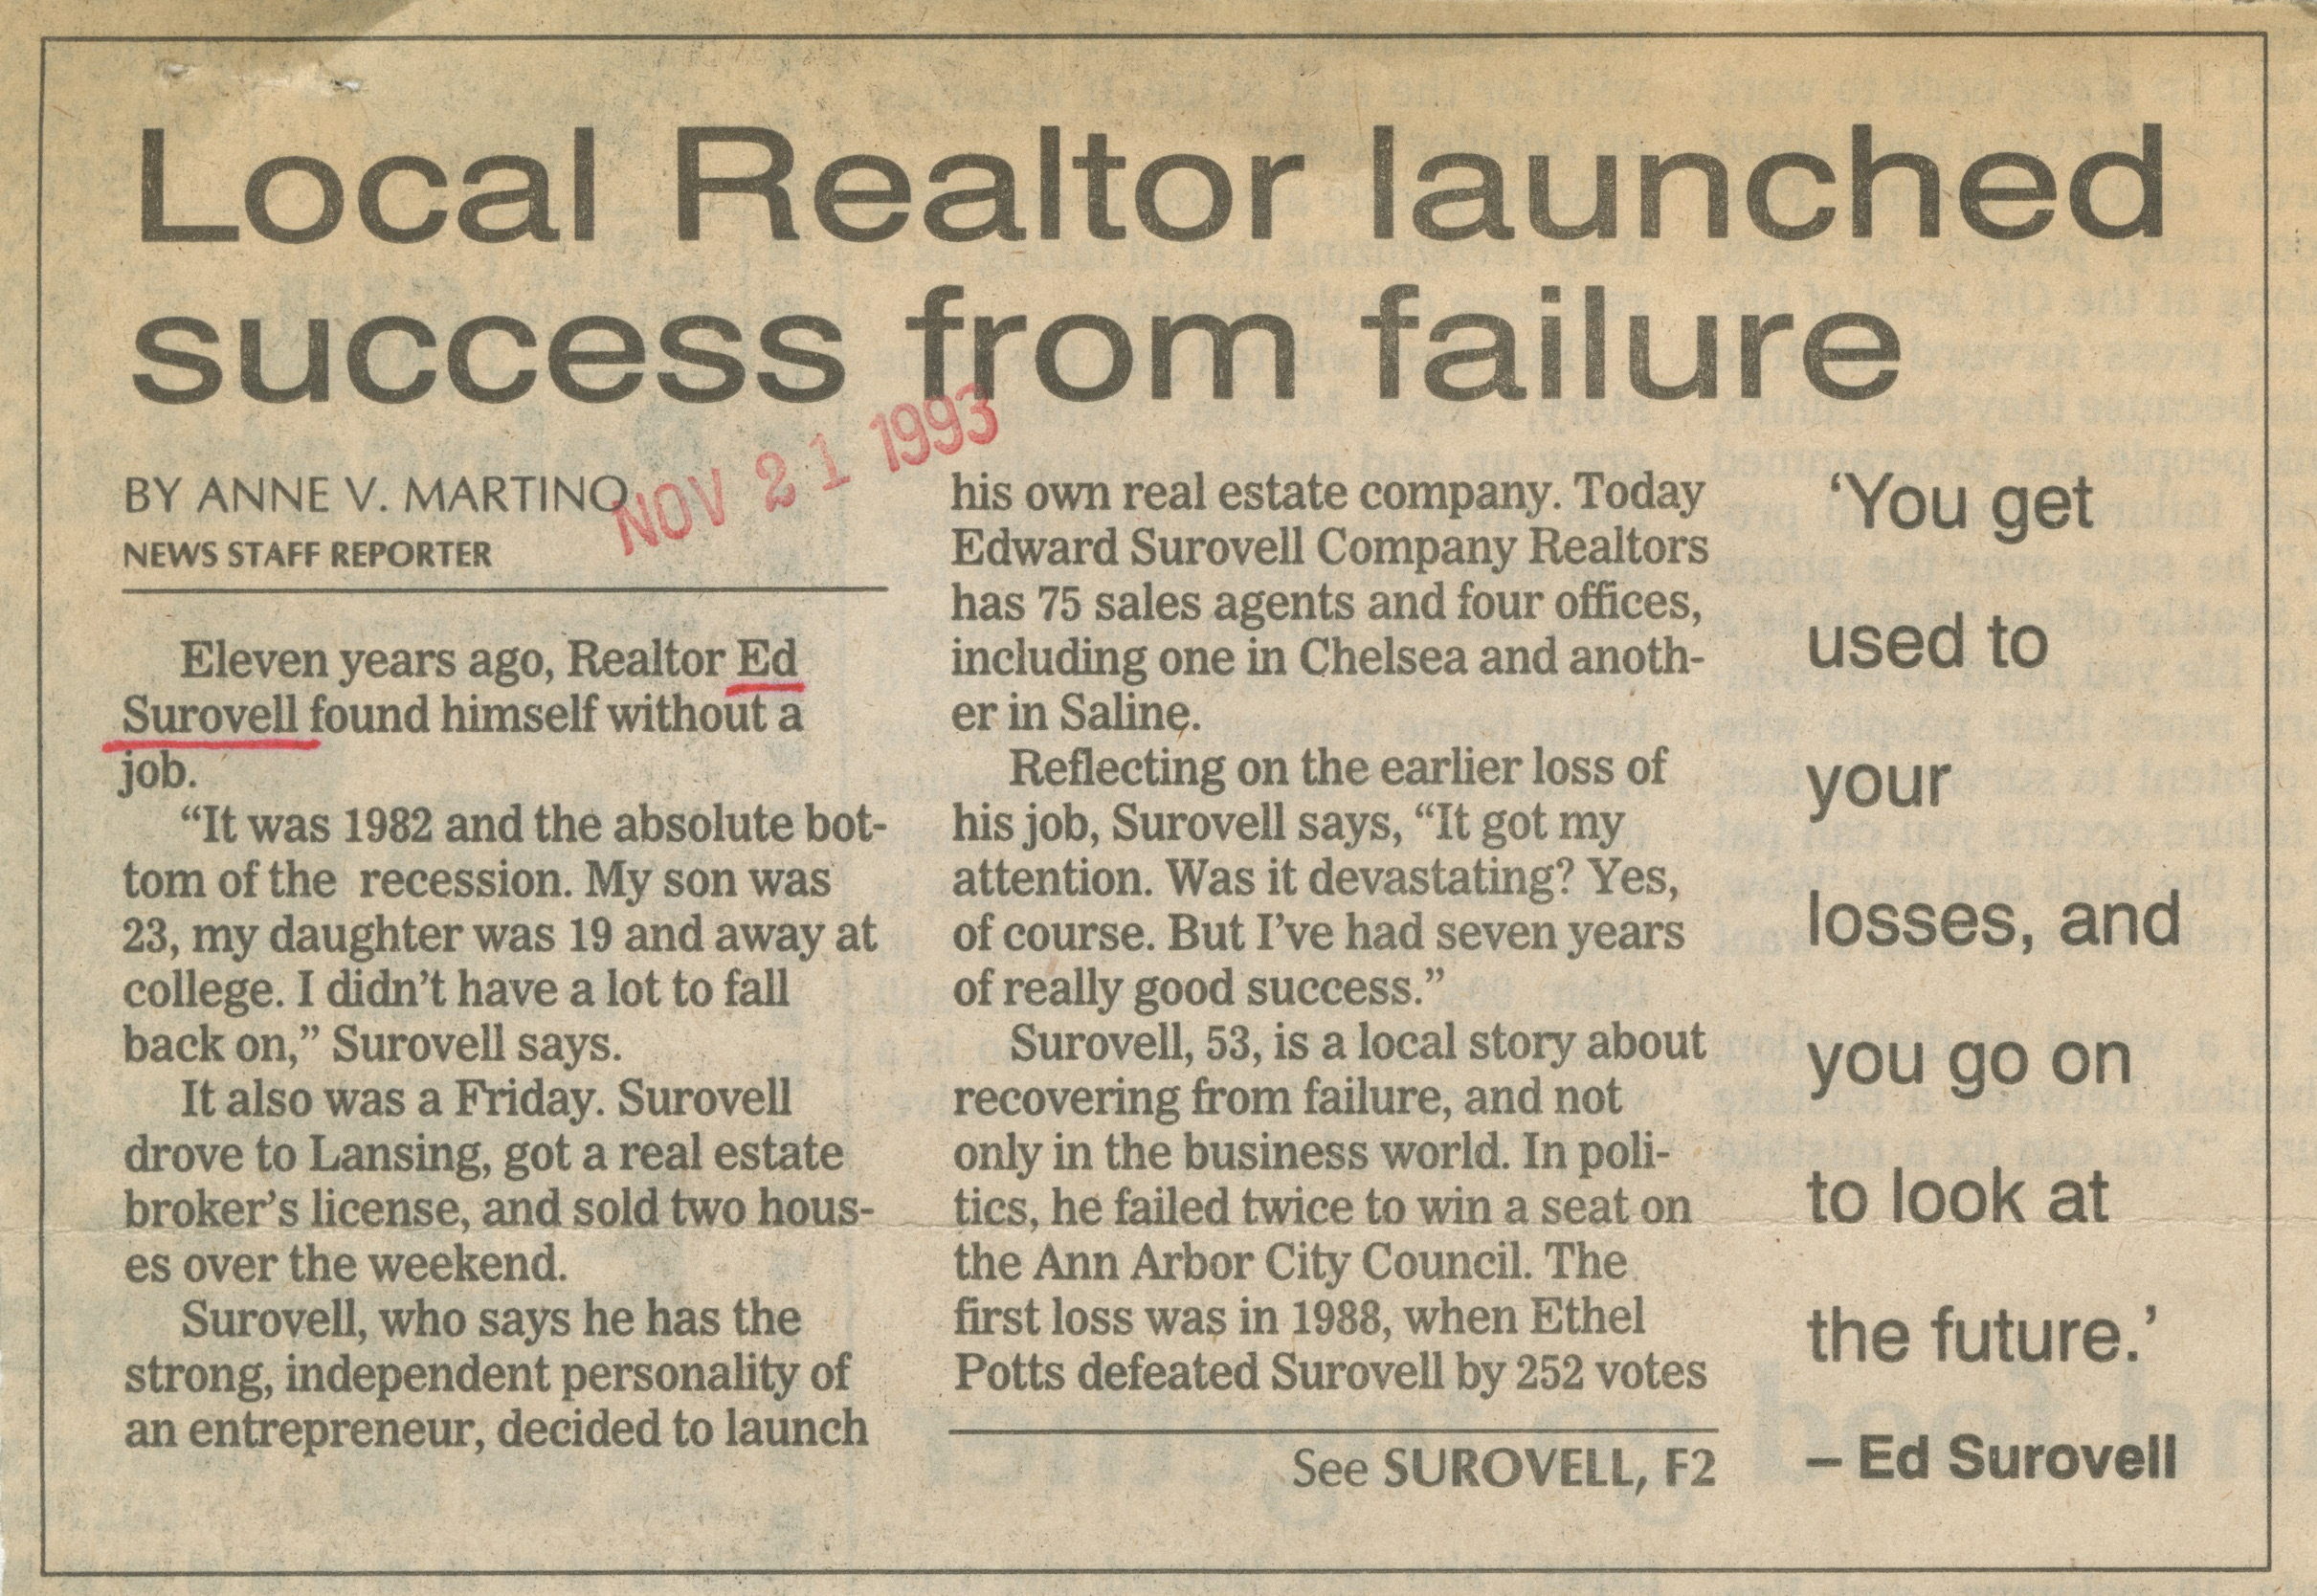 Local Realtor Launched Success From Failure image